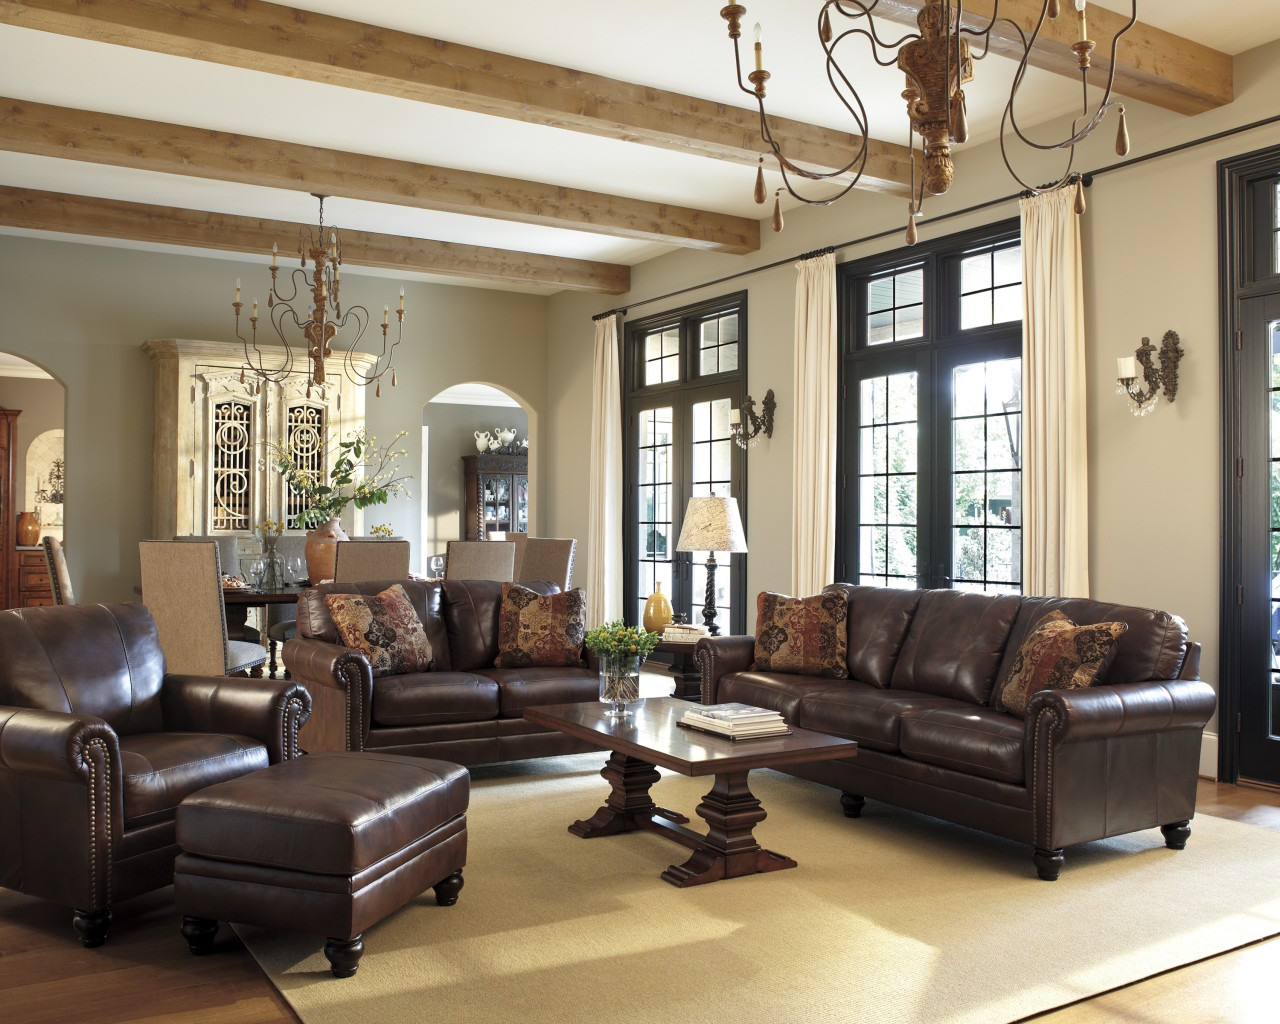 Tips For Decorating A Big Space Ashley Furniture Homestore